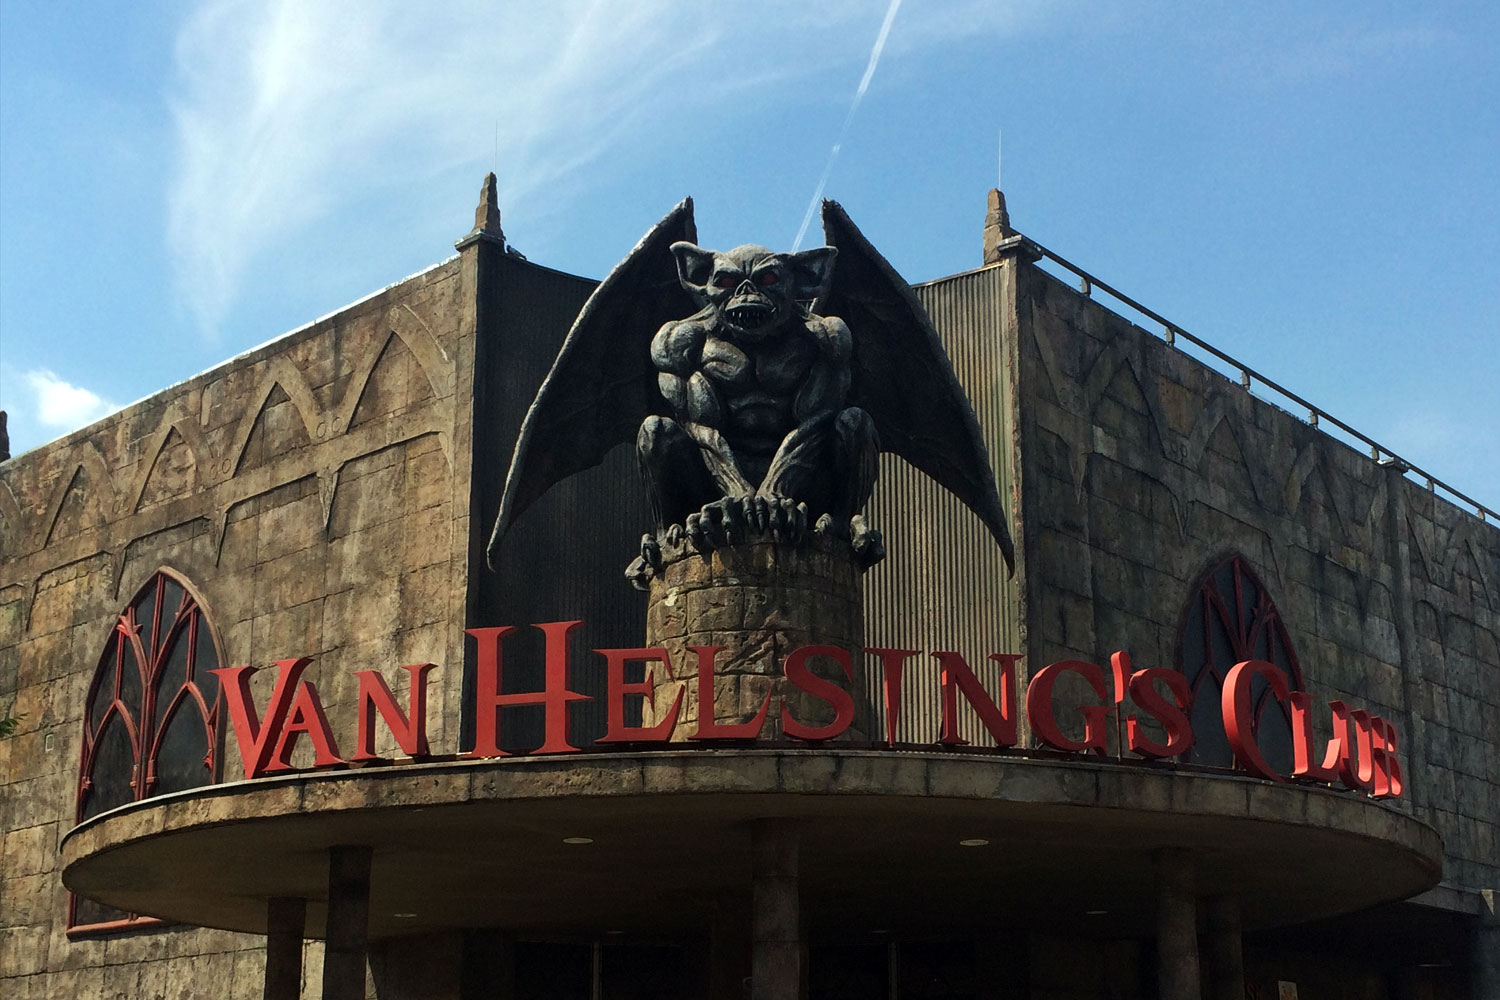 van helsing club movie park germany